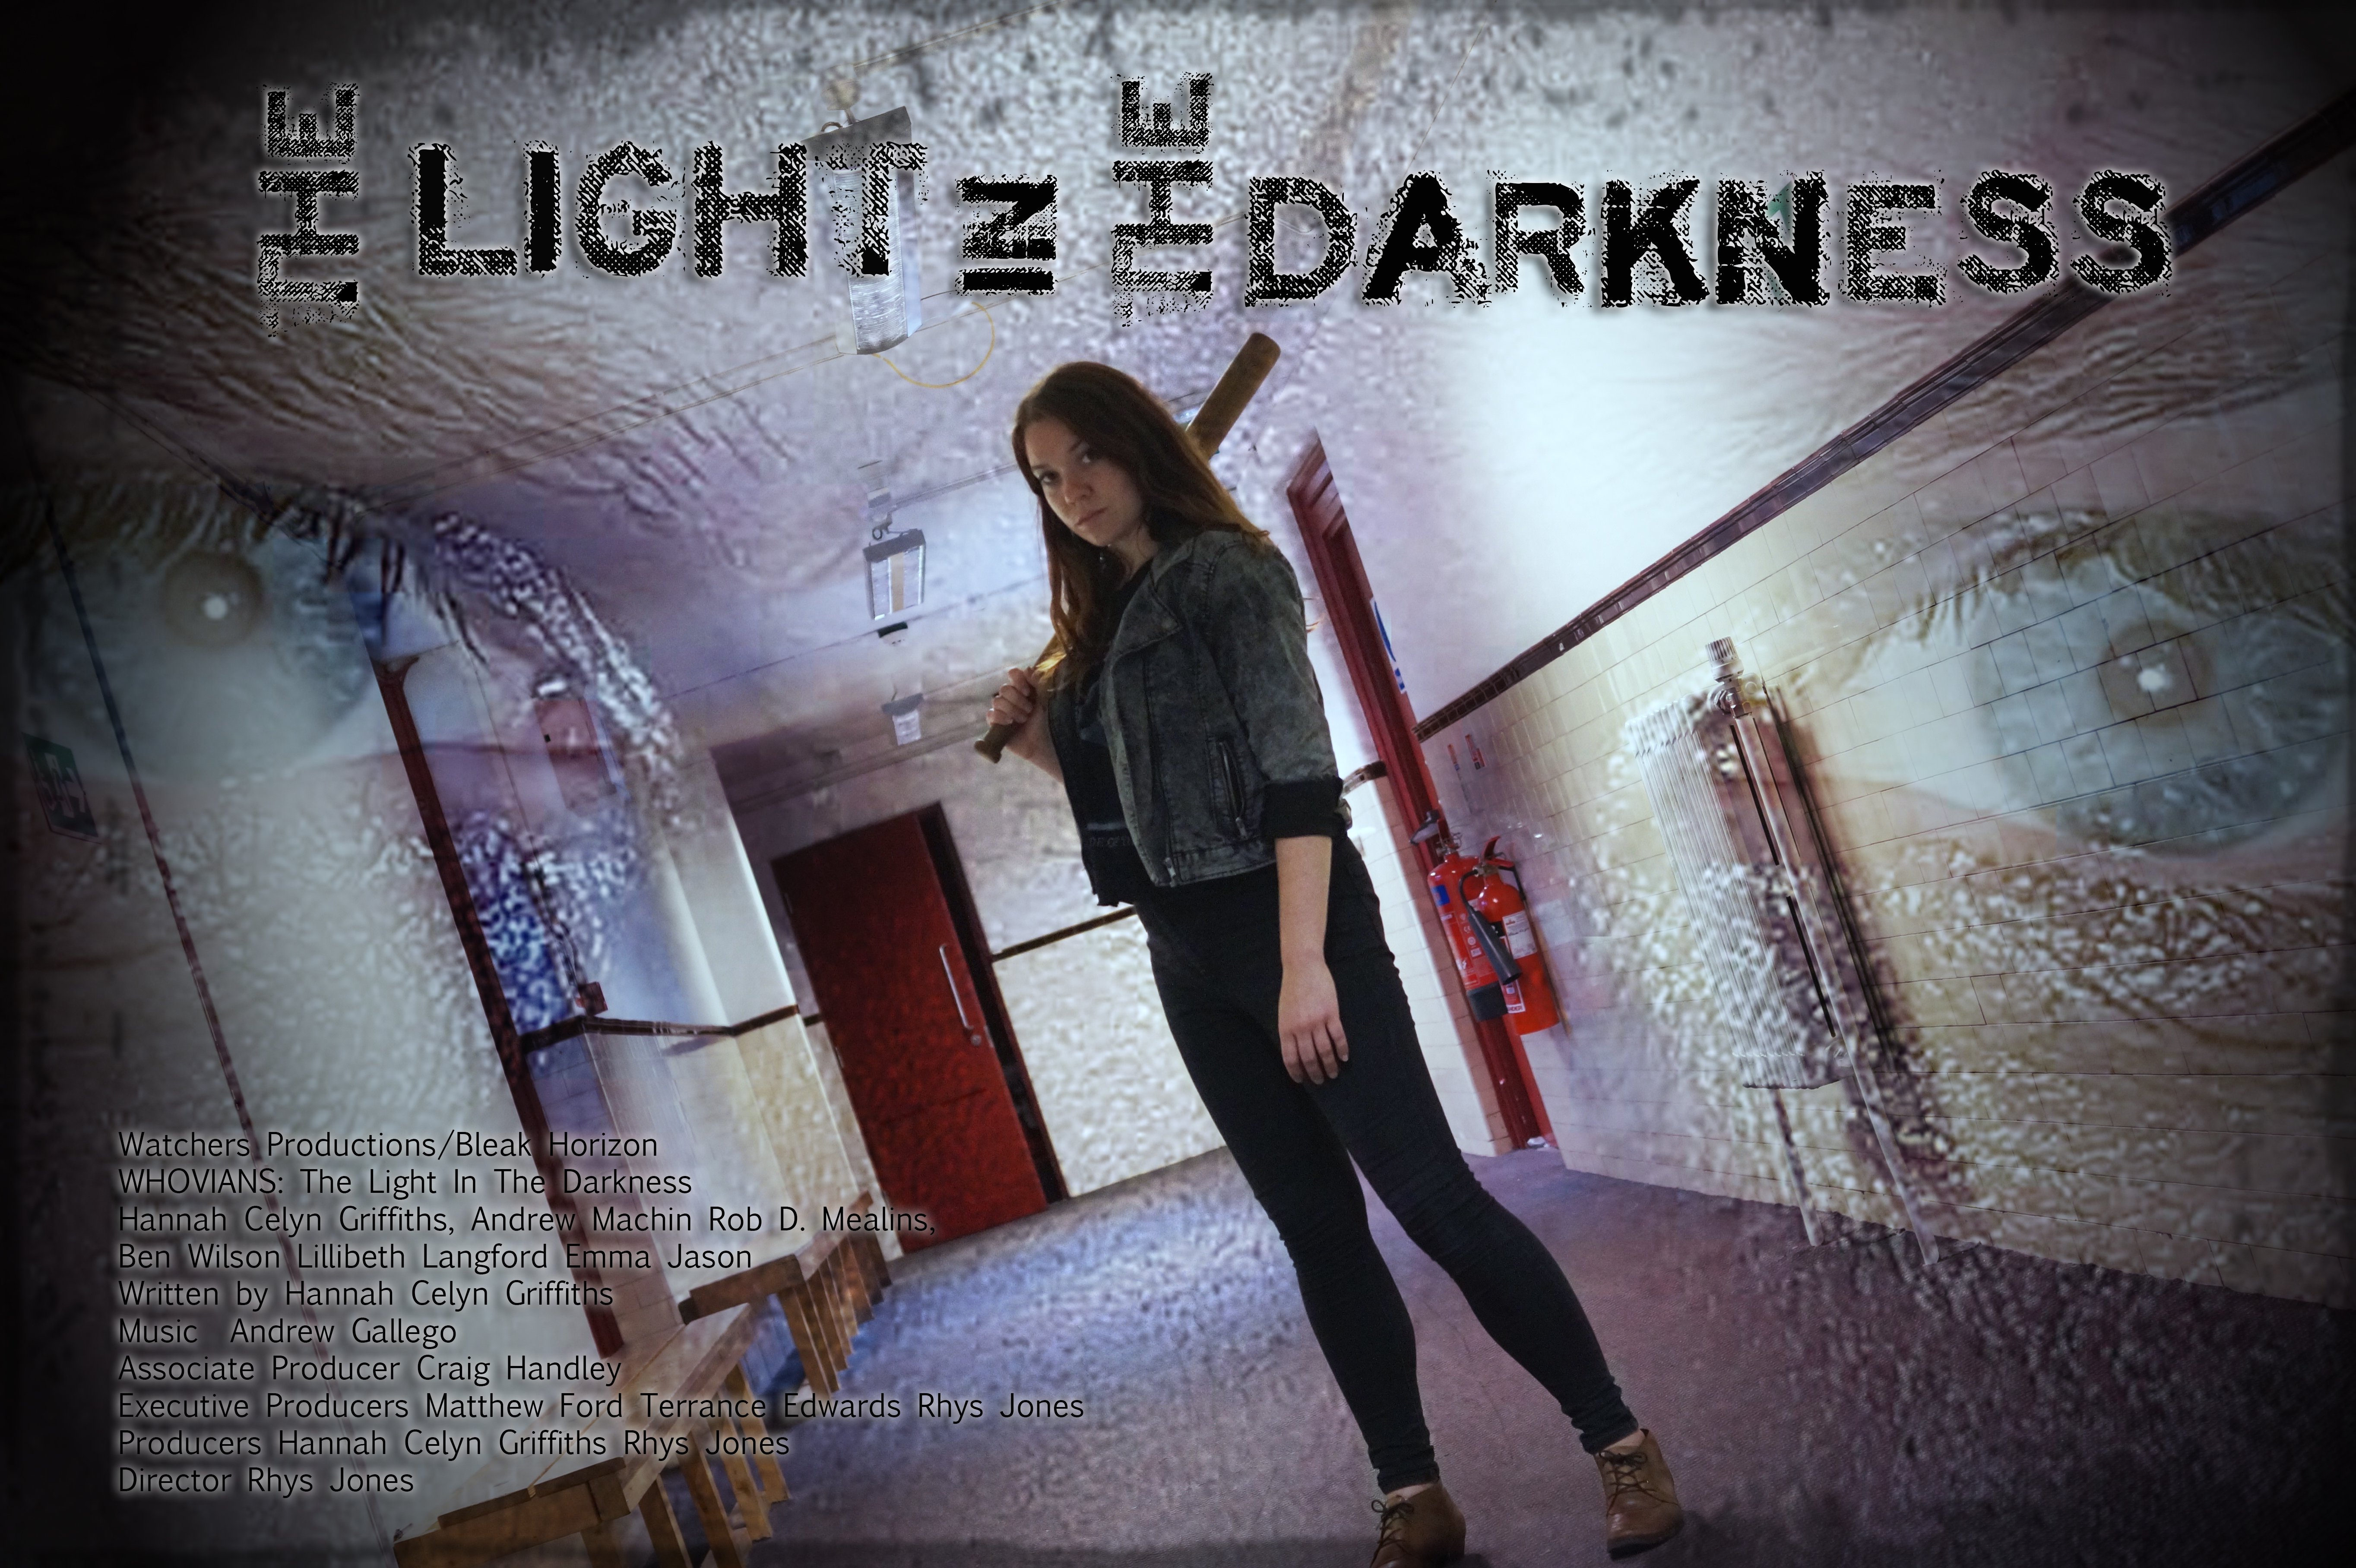 Episode 2.5 - The Light In The Darkn